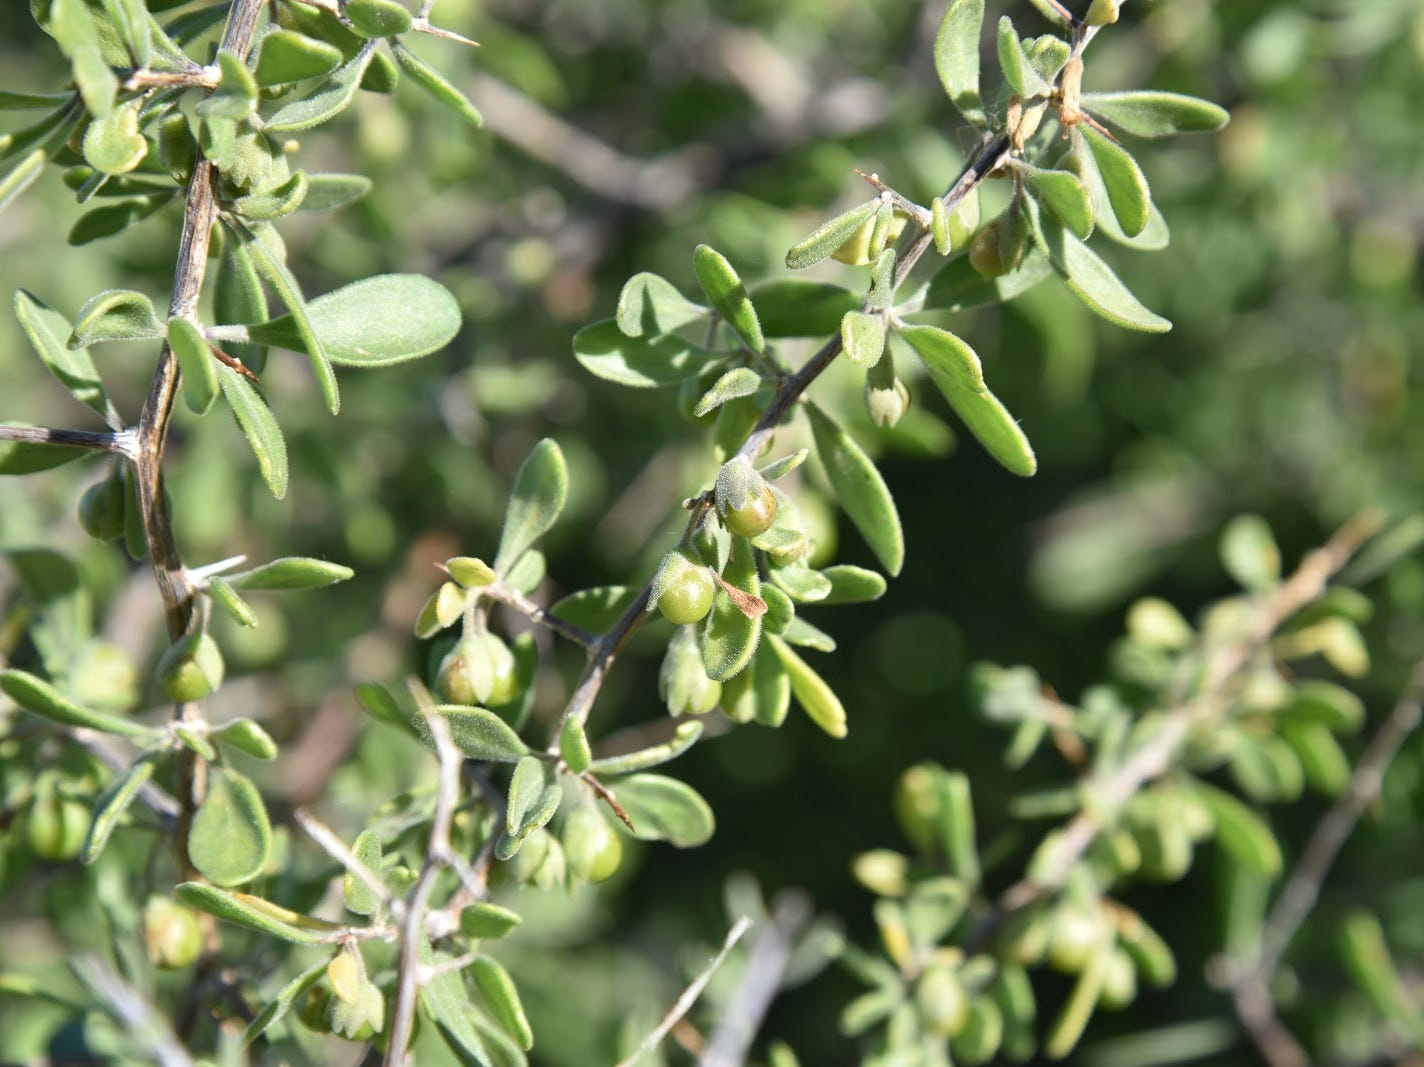 Wolfberry shrubs thrive in moist areas of the McDowell Sonoran Preserve